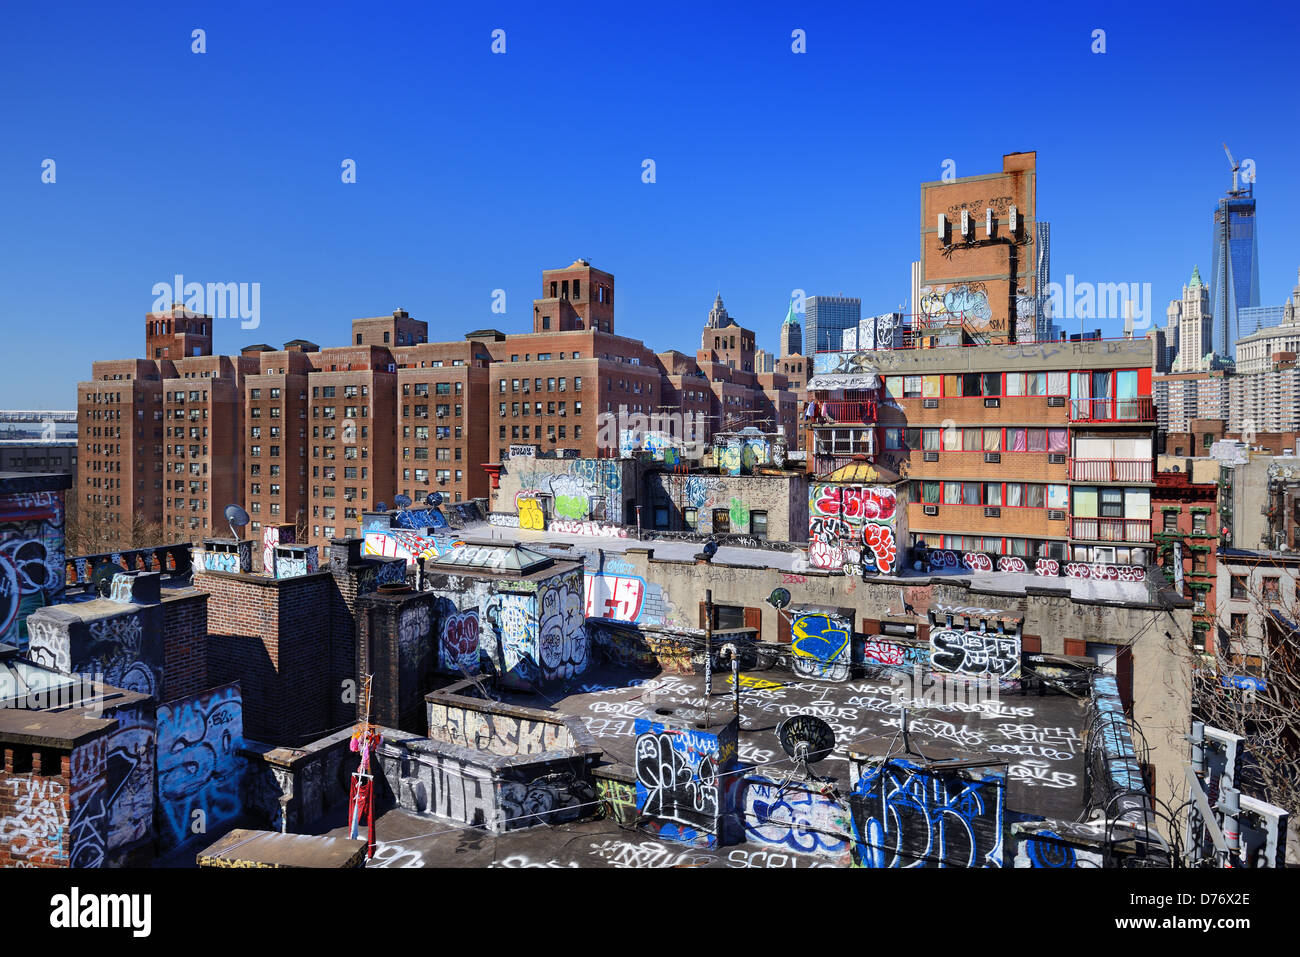 Gritty rooftops in the Lower East Side of Manhattan - Stock Image